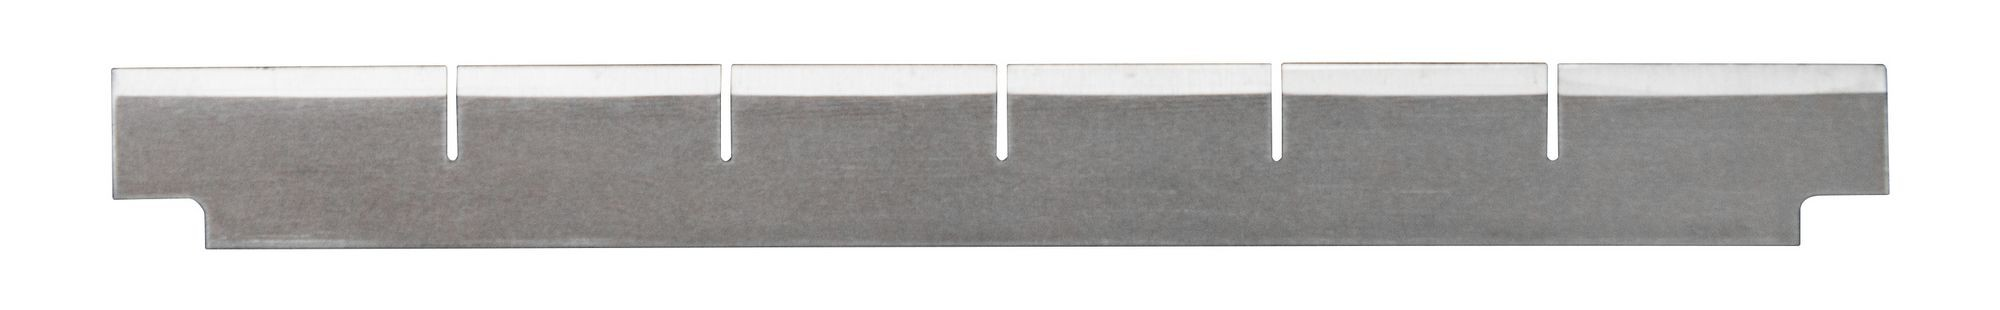 """Winco HFC-500R 1/2"""" Cut Replacement Blade for HFC-375 Quick Slice Fry Cutter"""